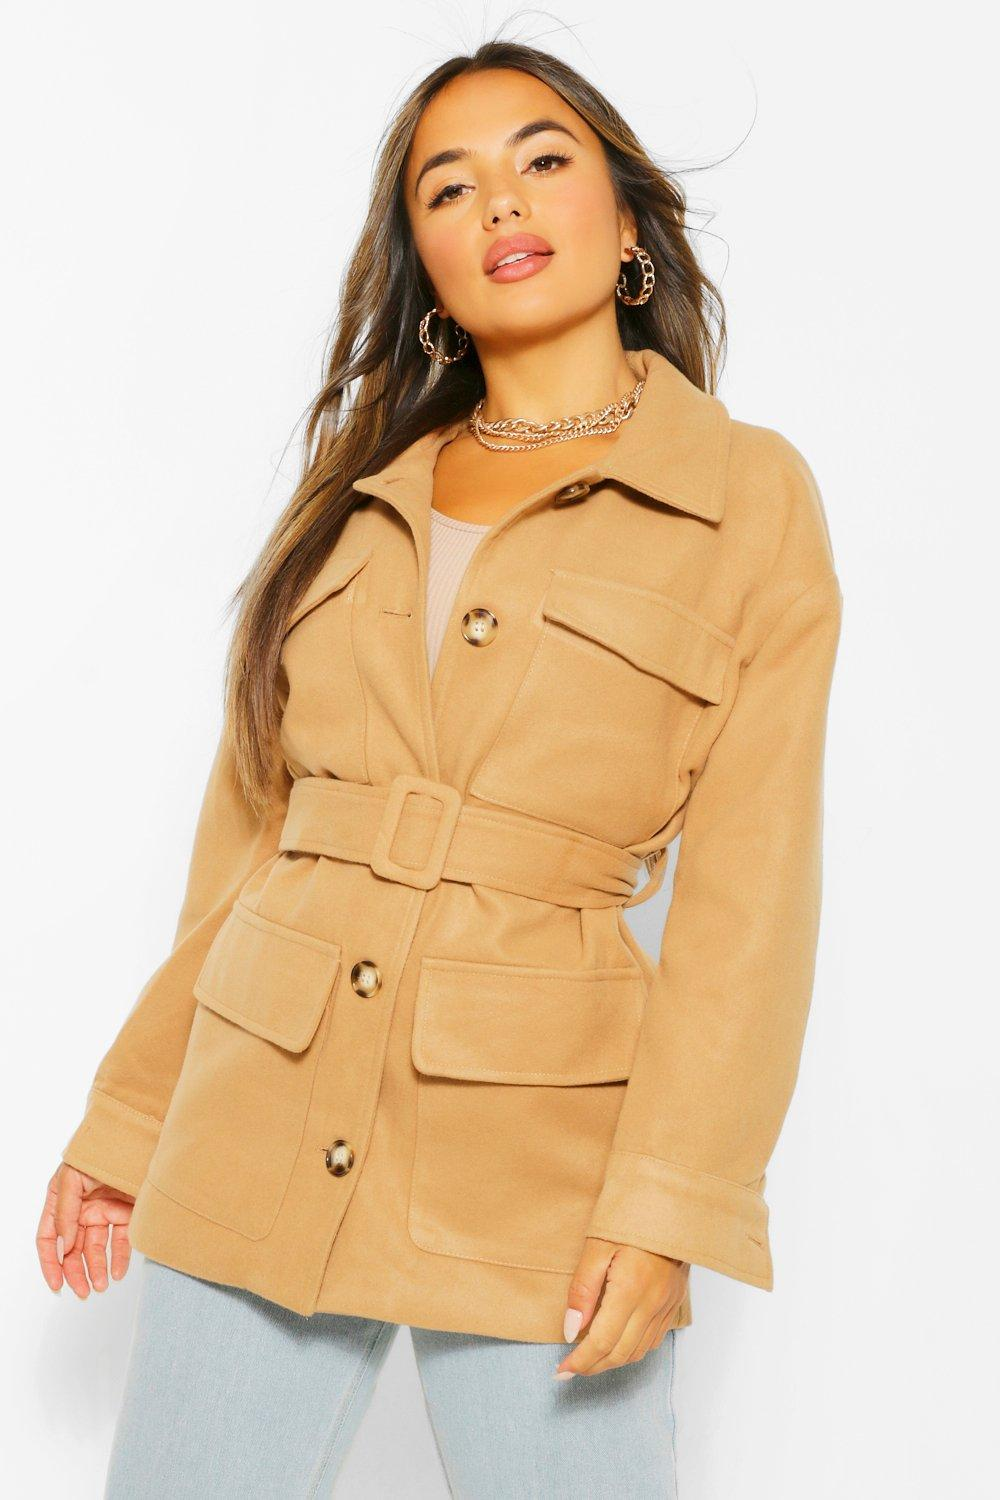 1930s Style Clothing and Fashion Womens Petite Wool Look Belted Jacket - Beige - 10 $27.20 AT vintagedancer.com